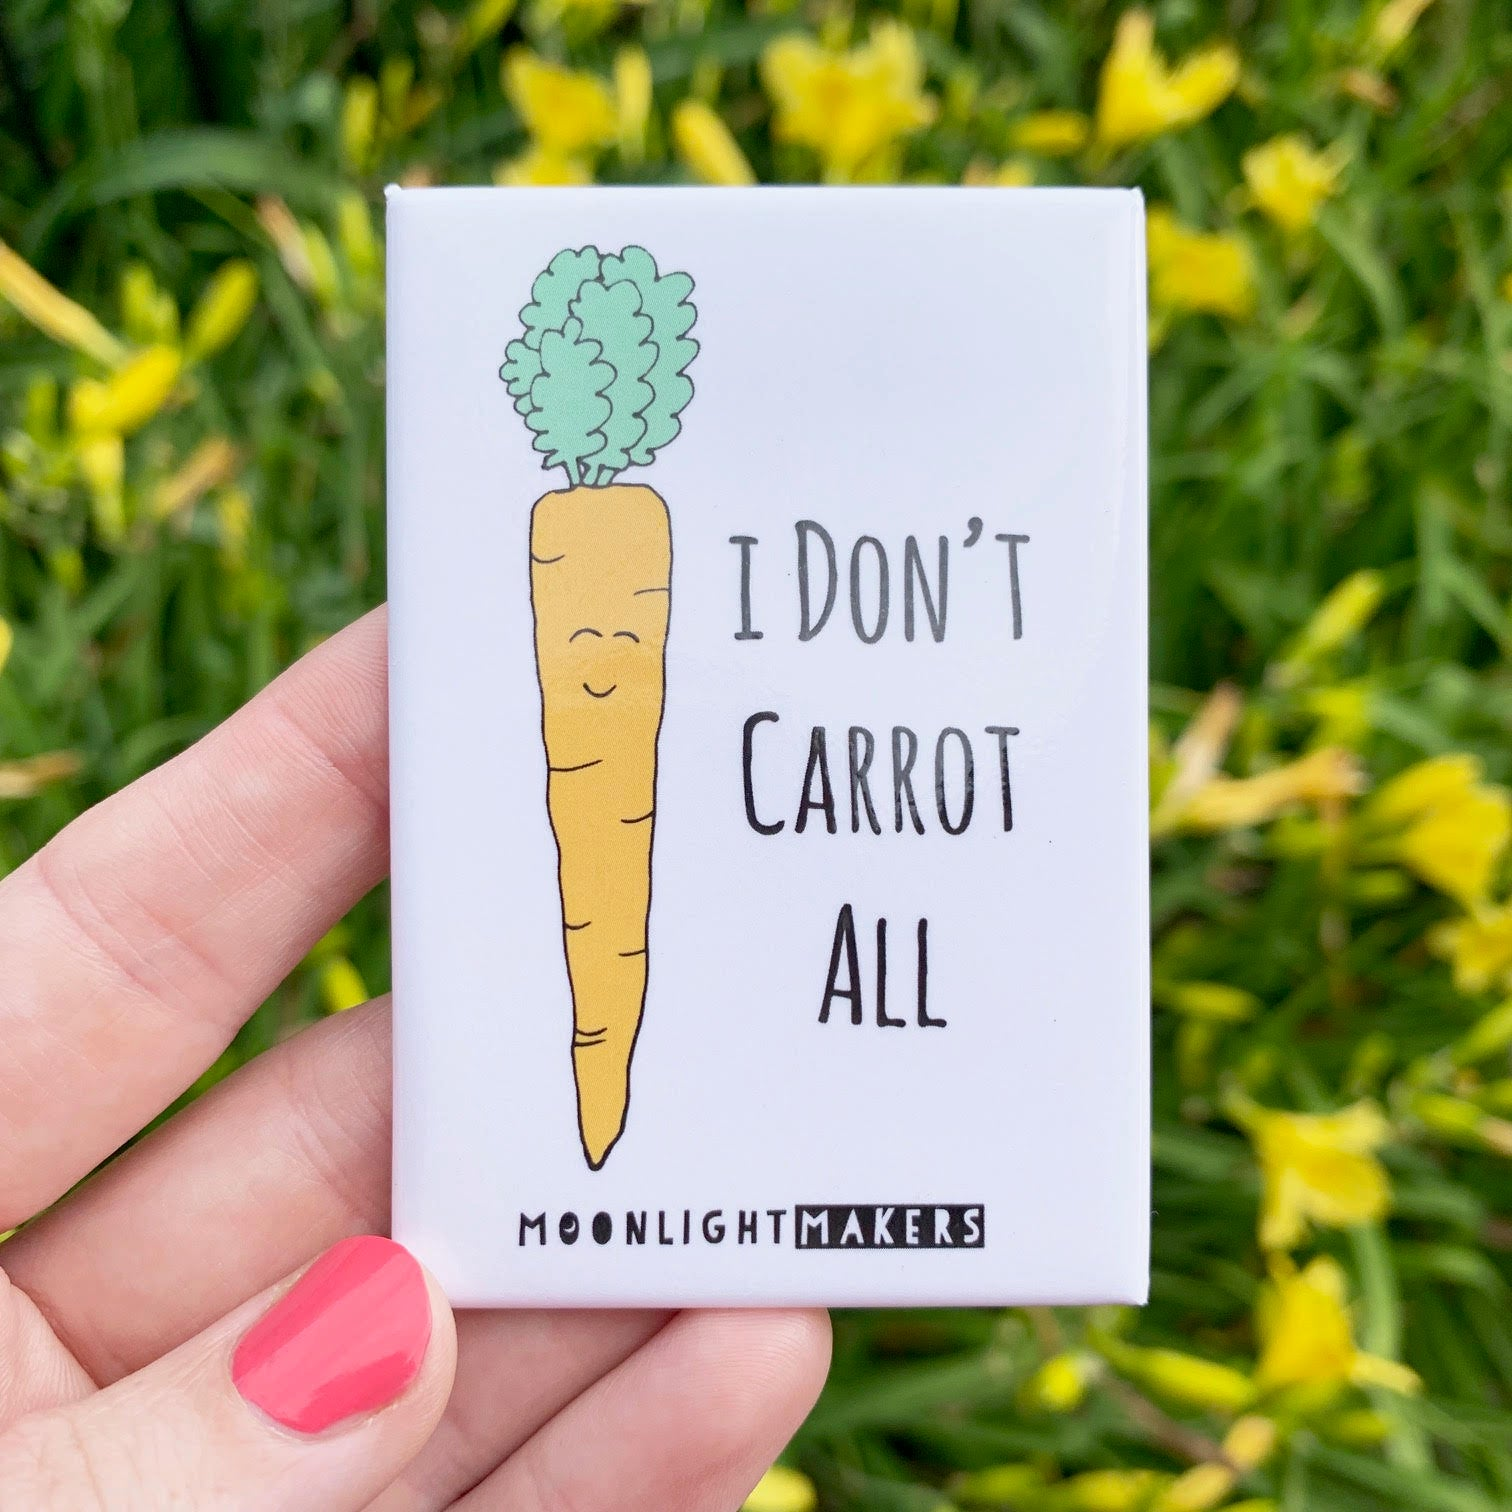 I Don't Carrot All - Magnet - MoonlightMakers